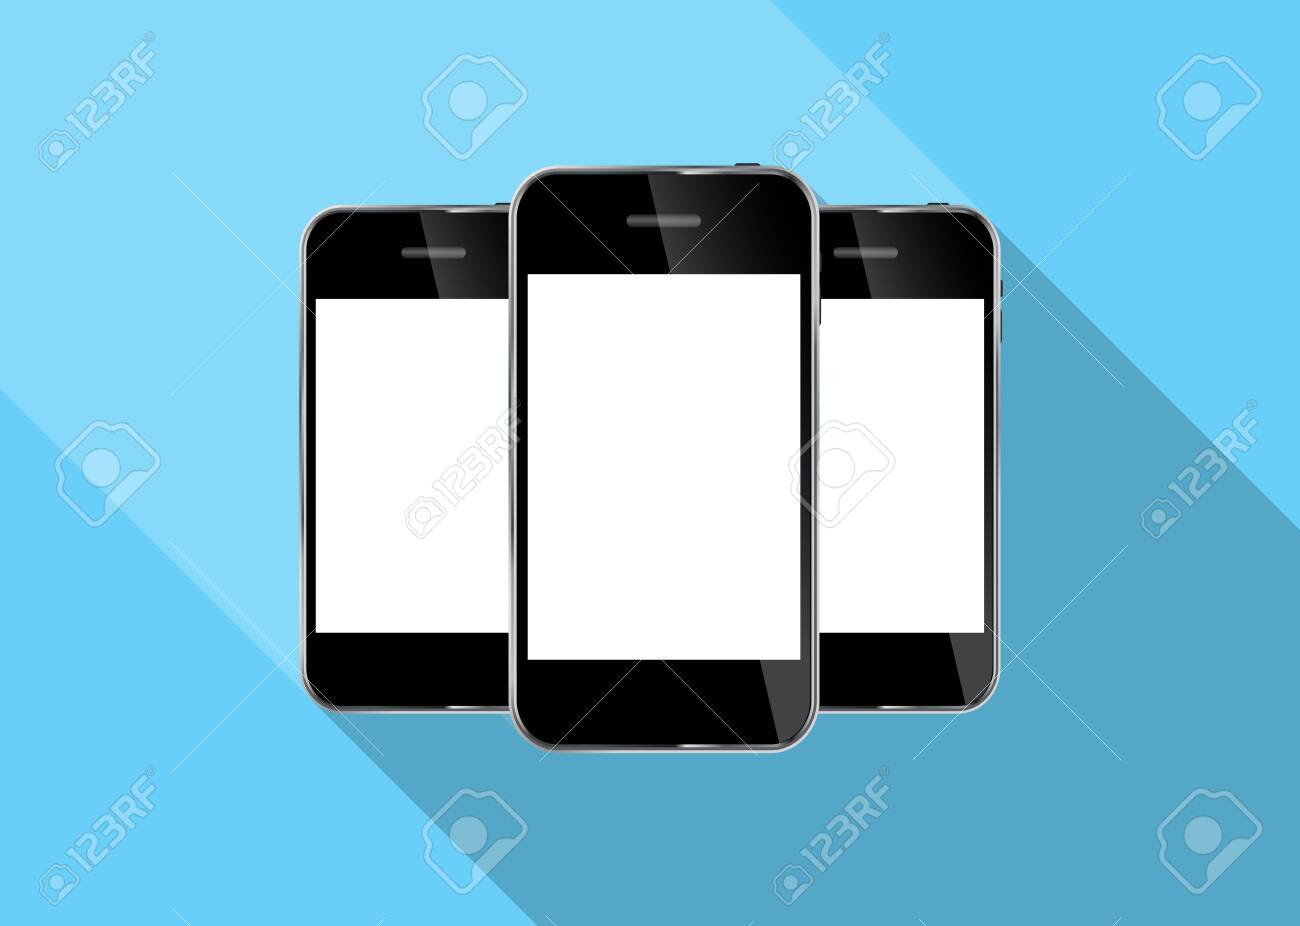 Abstract Design Realistic Mobile Phone Illustration Stock Vector - 26337408